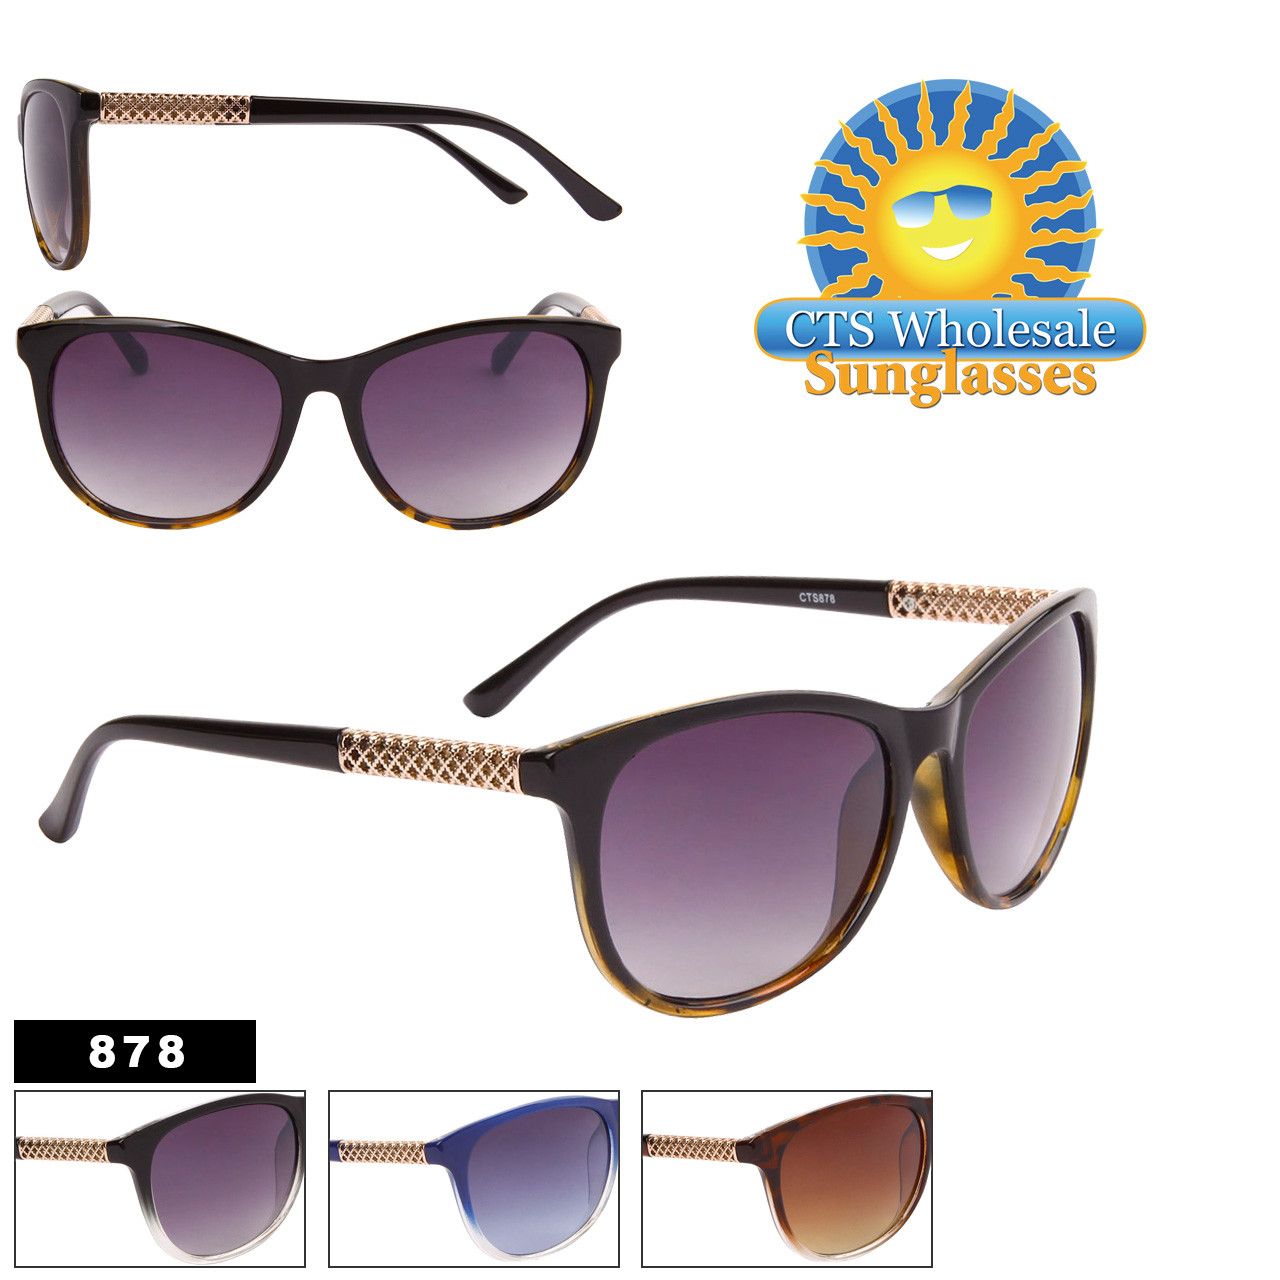 Chic Diamond Etched Metal Temple Sunglasses - Style #878